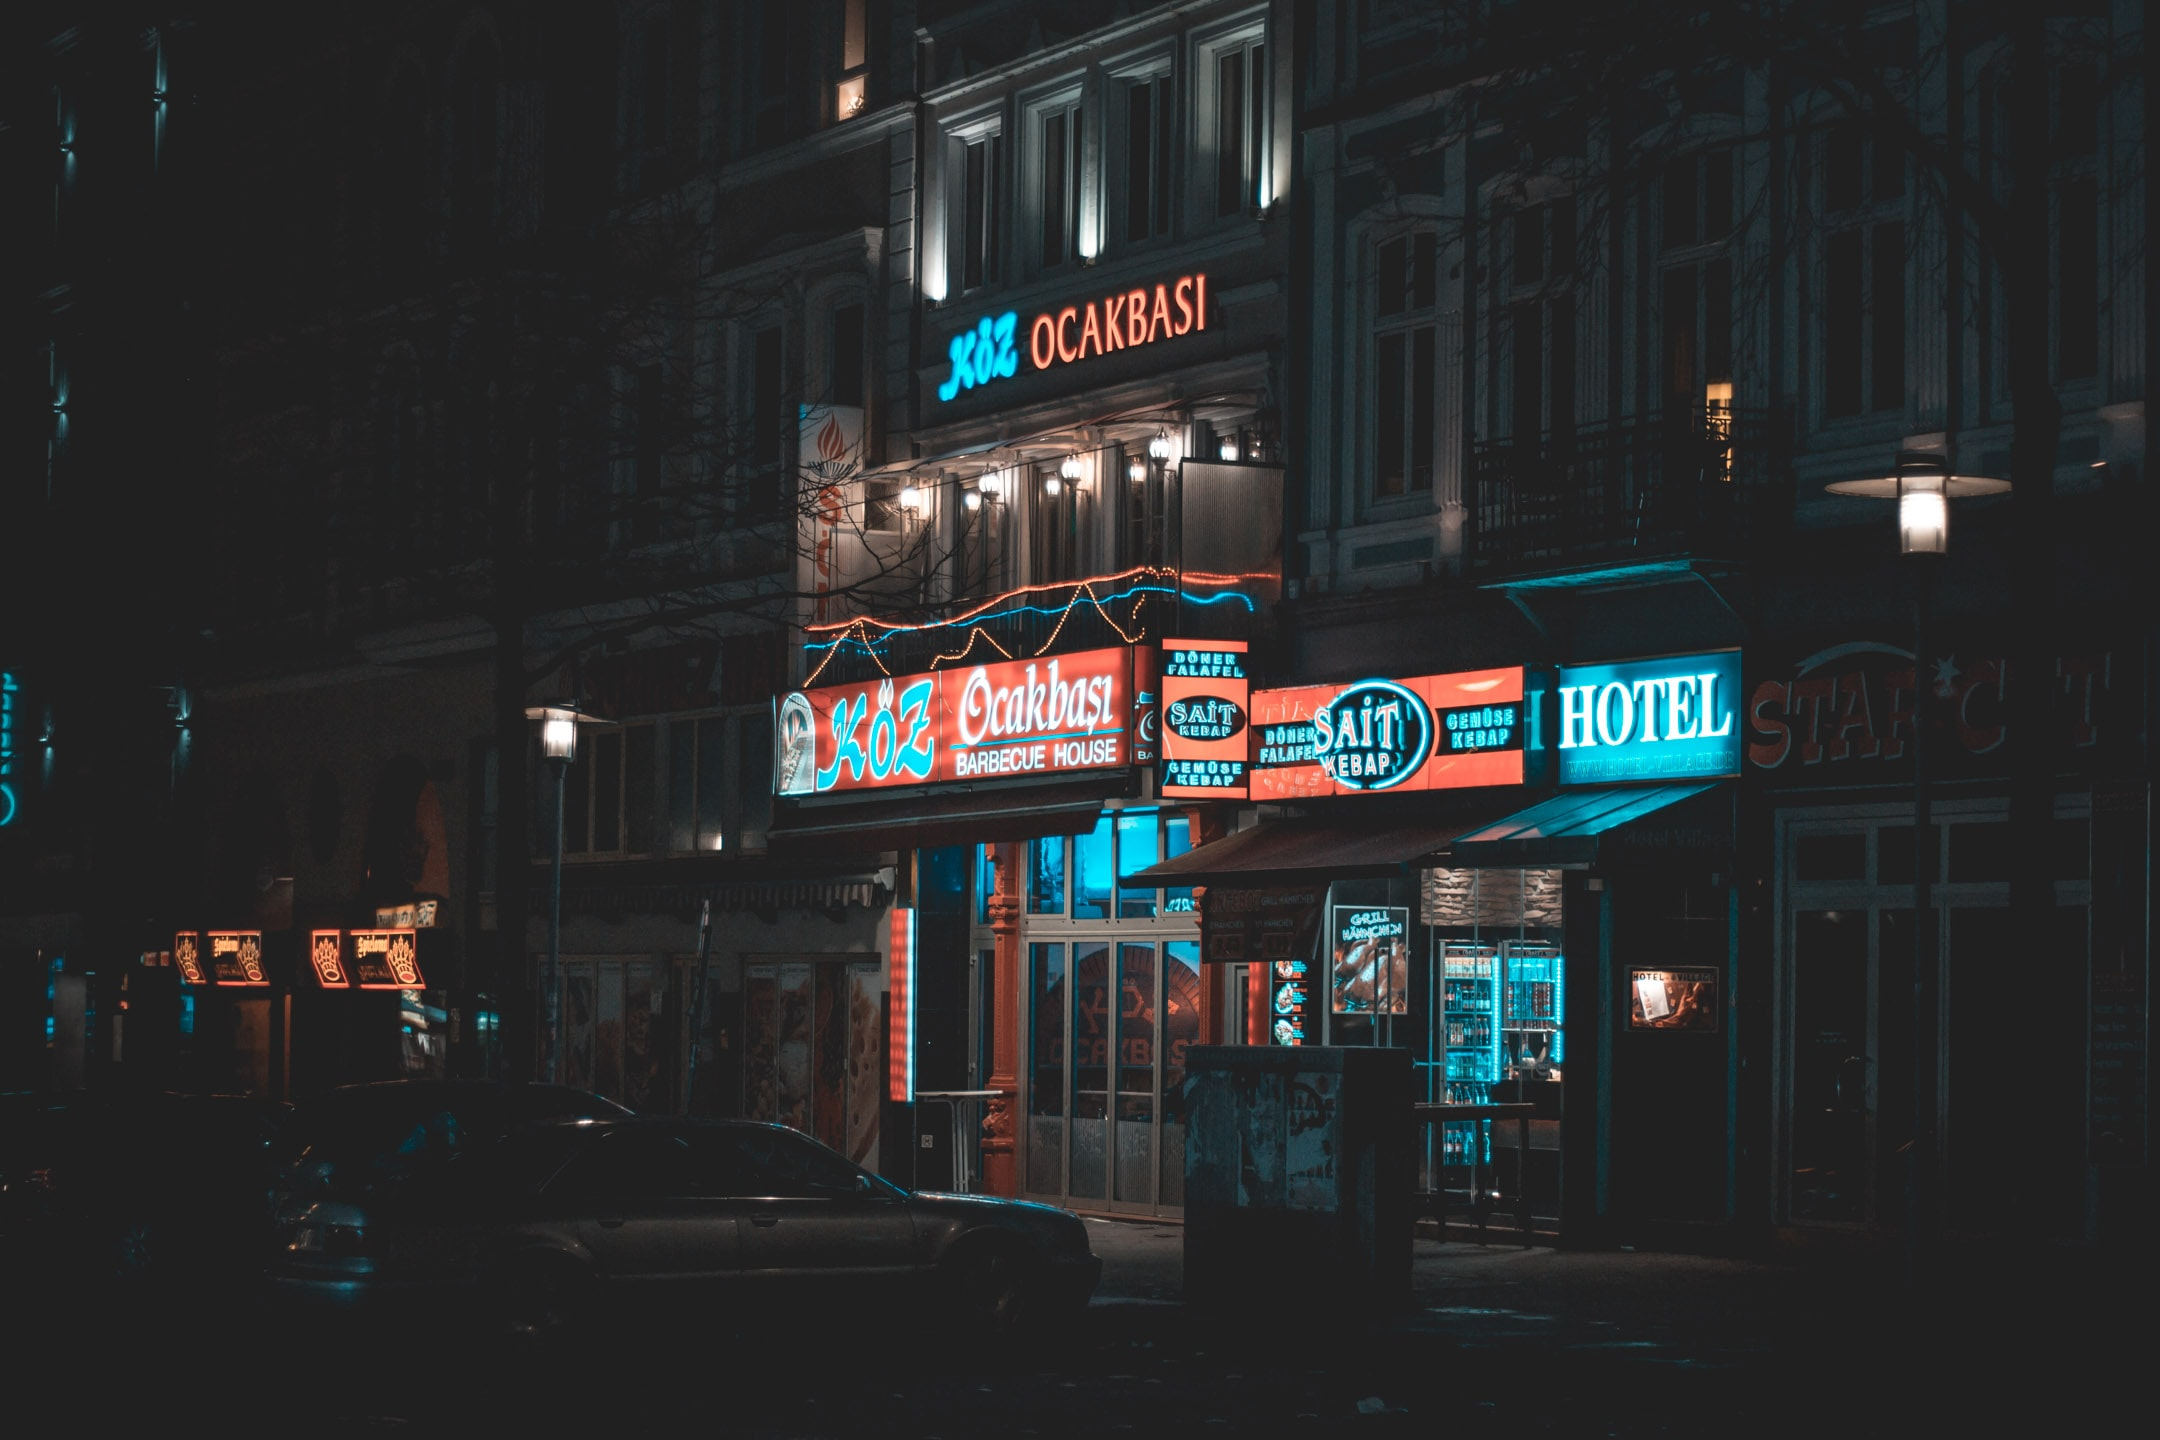 sedan parked near building with neon signage turned on at nighttime